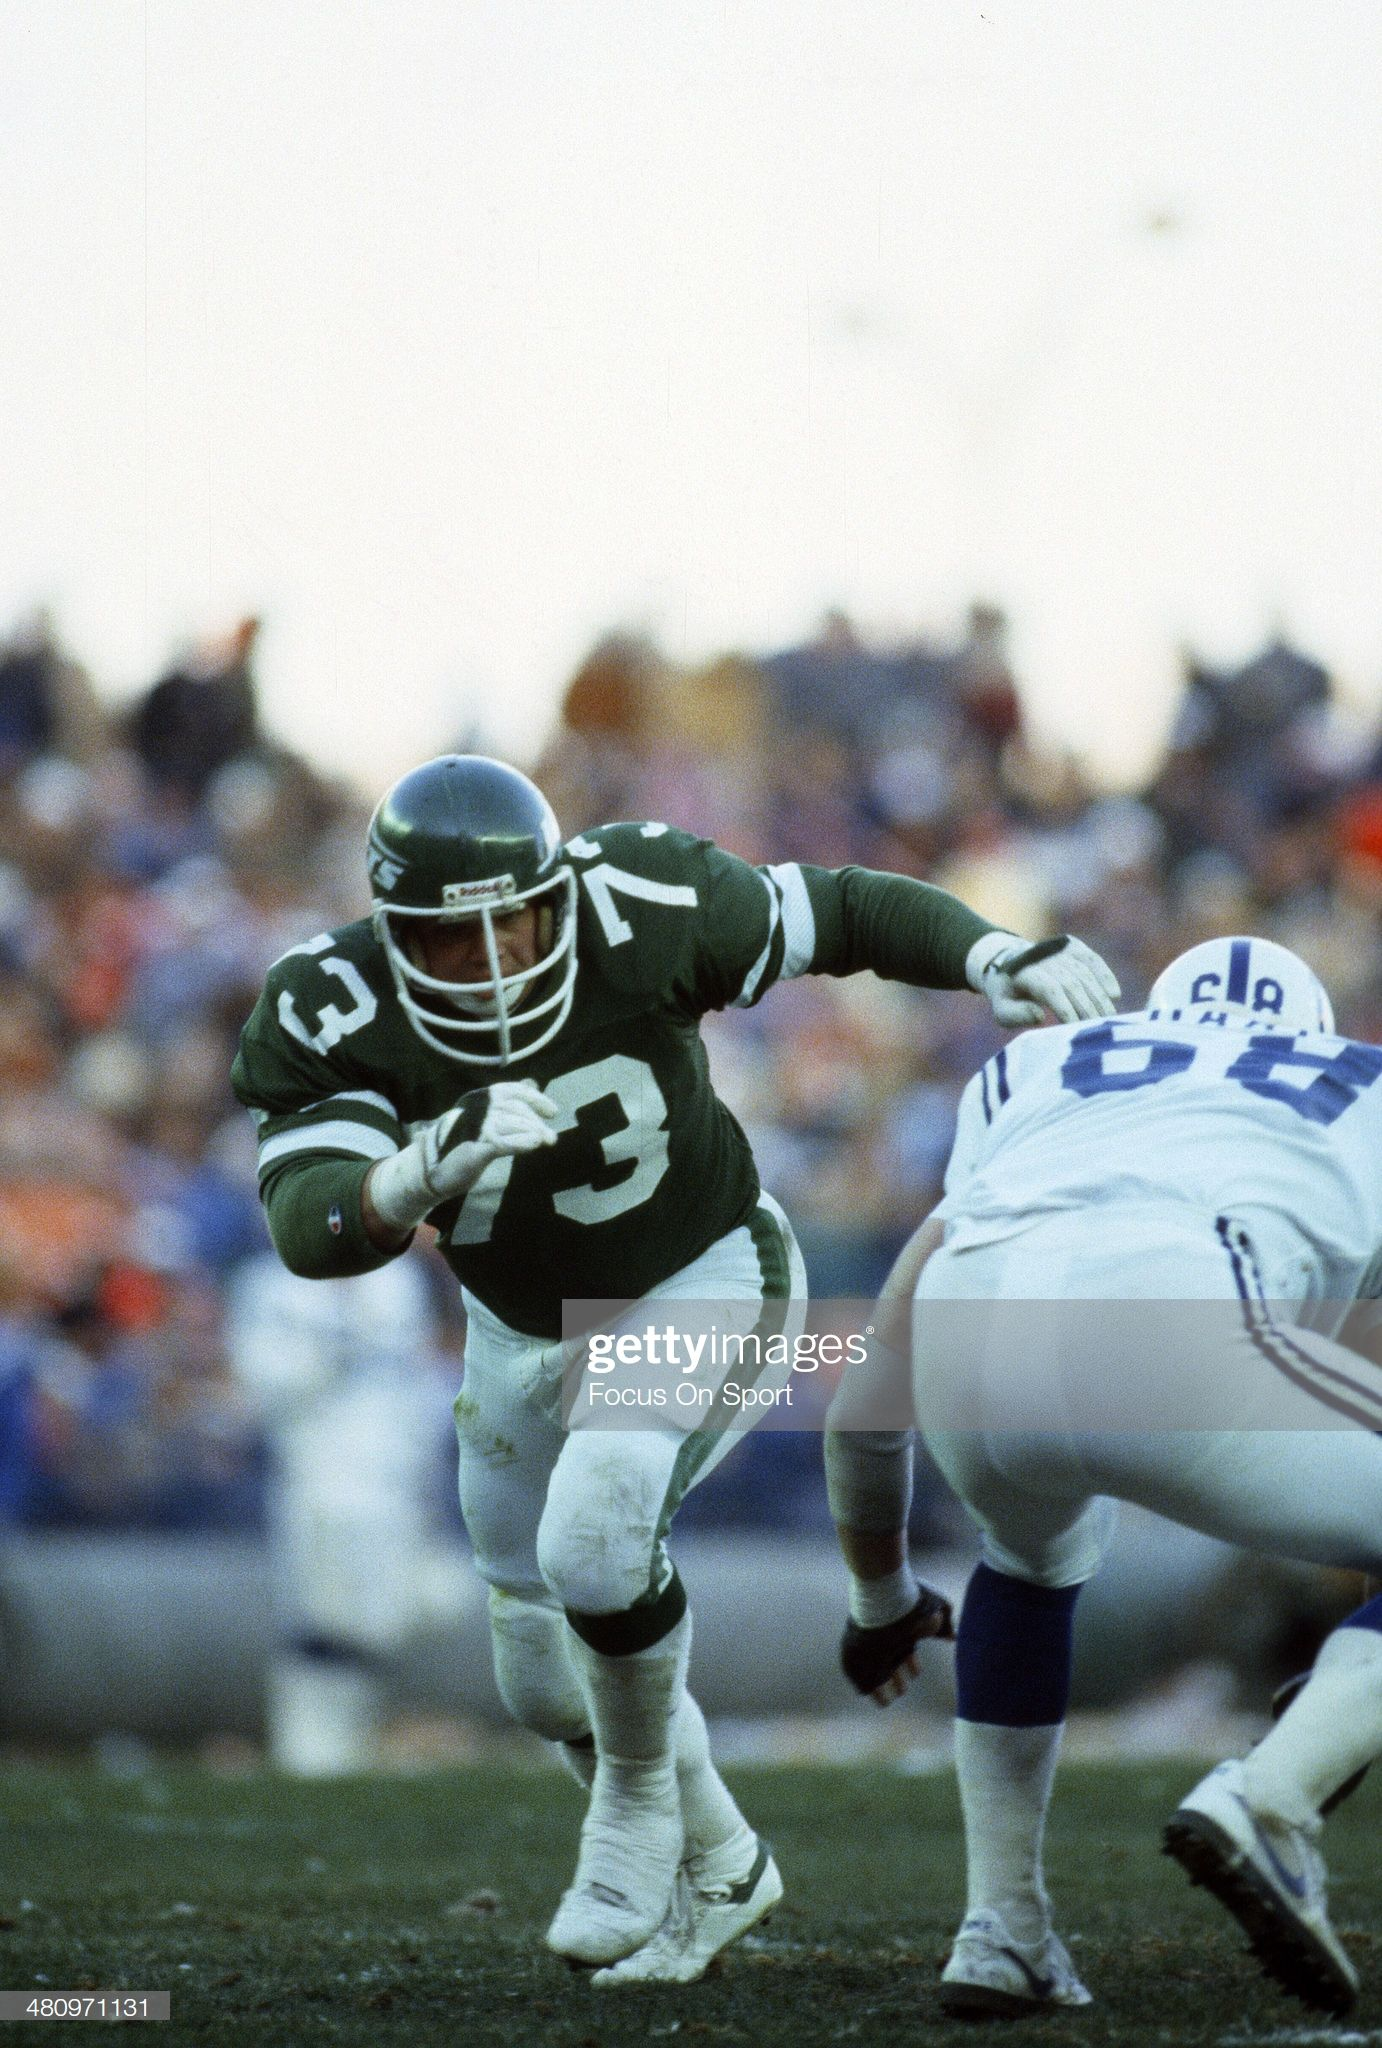 Joe Klecko of the New York Jets in action against the